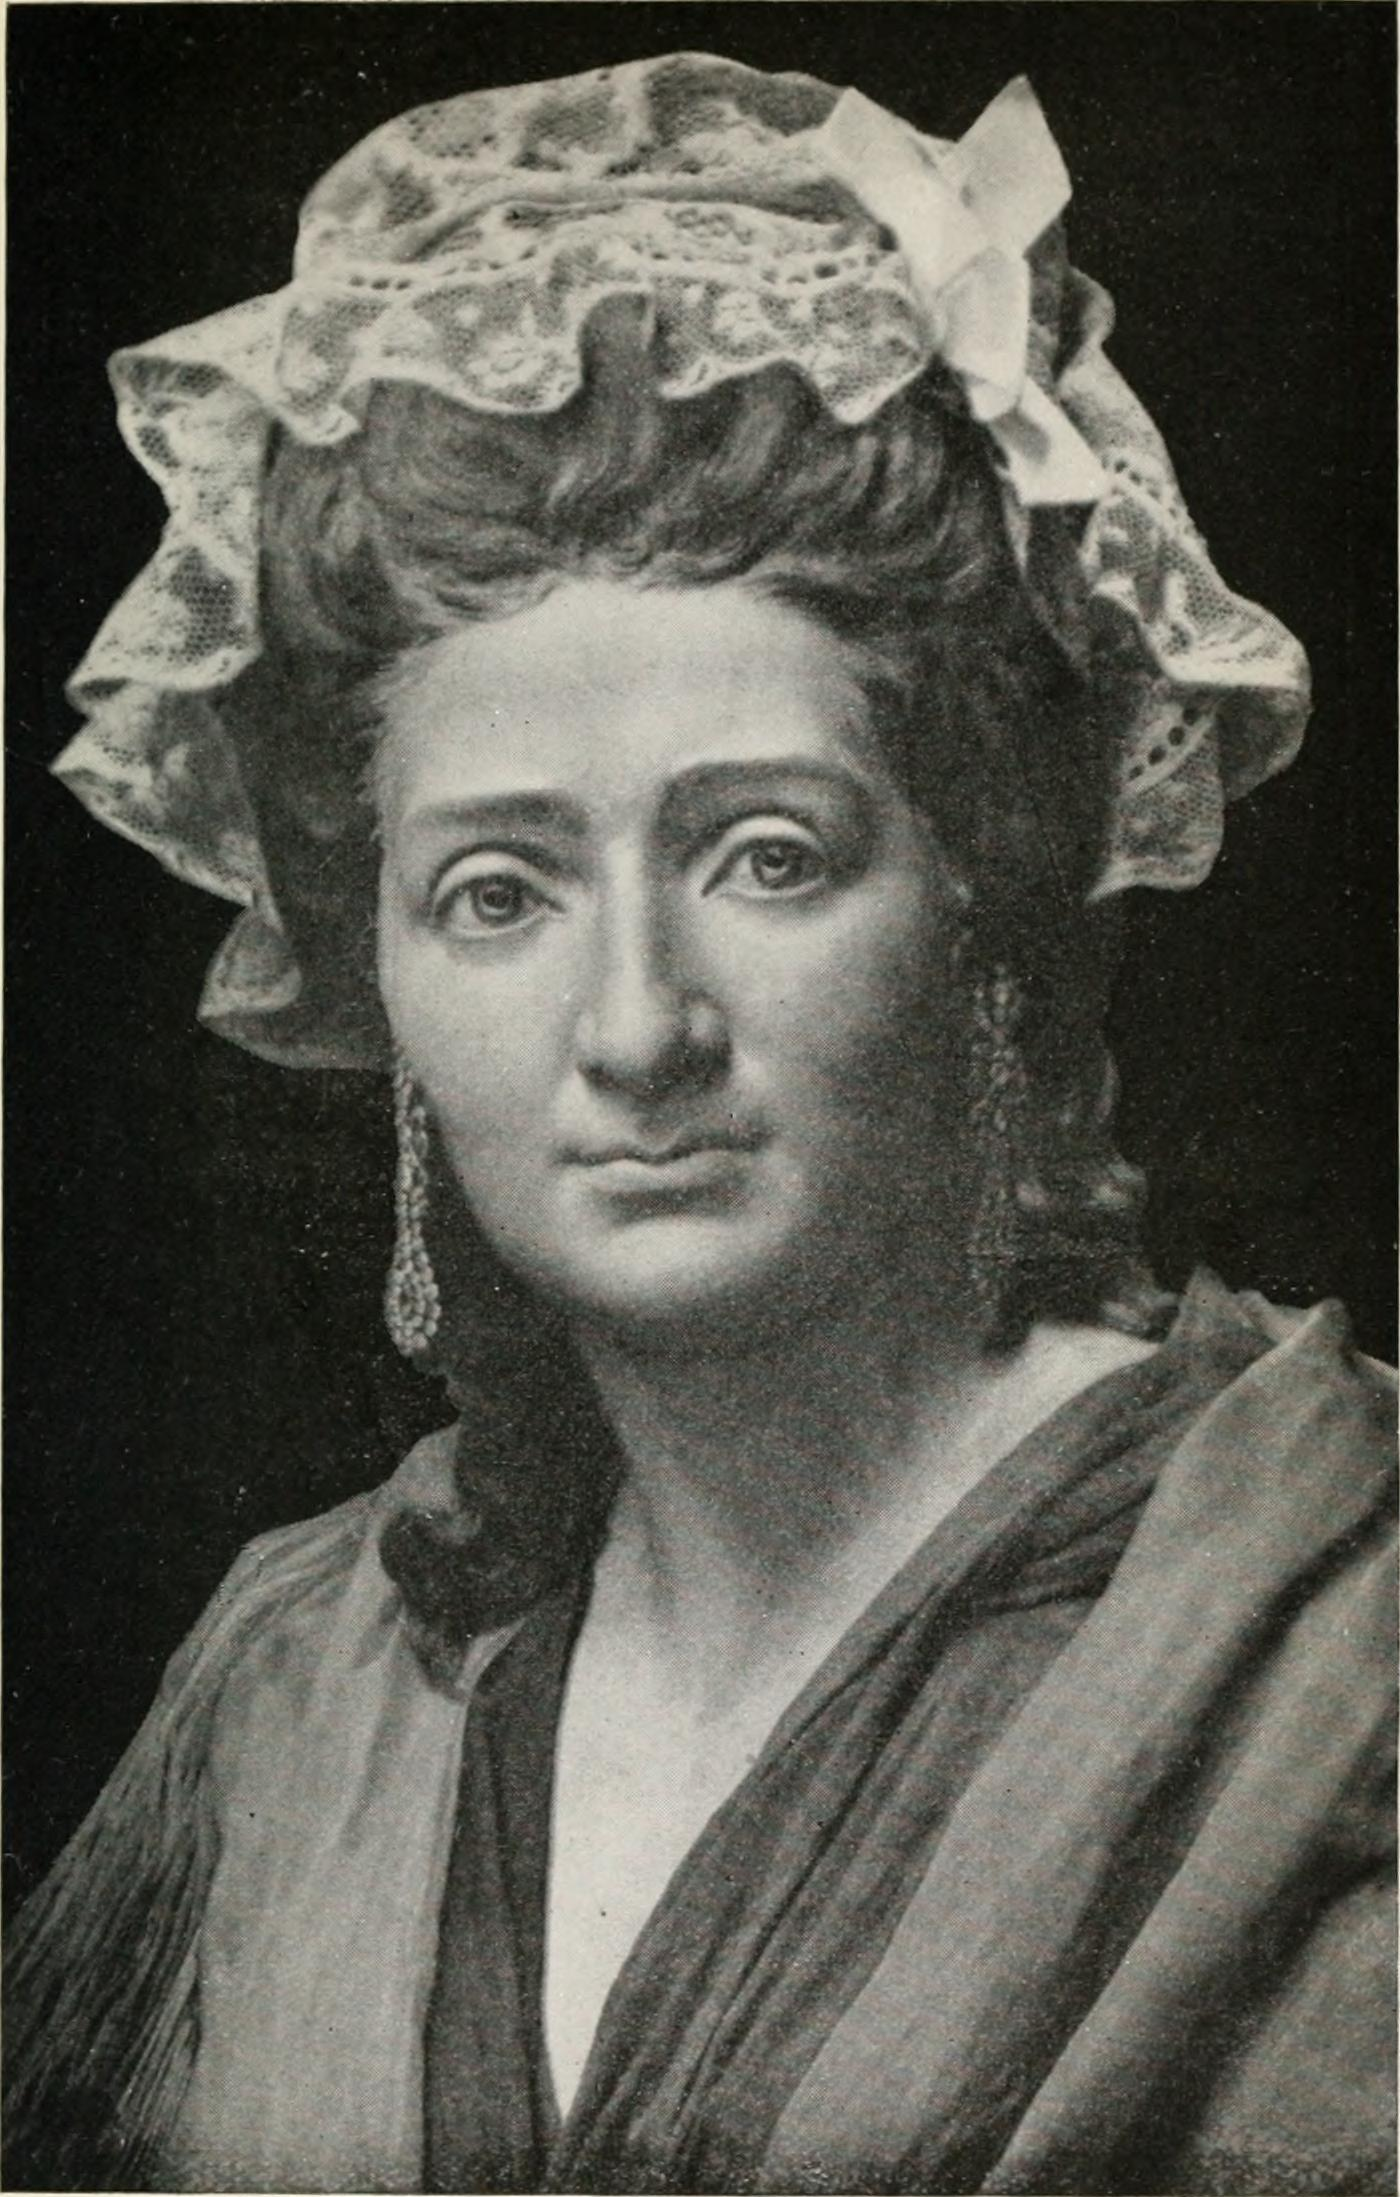 File:Madame Tussaud, age 42.jpg - Wikipedia